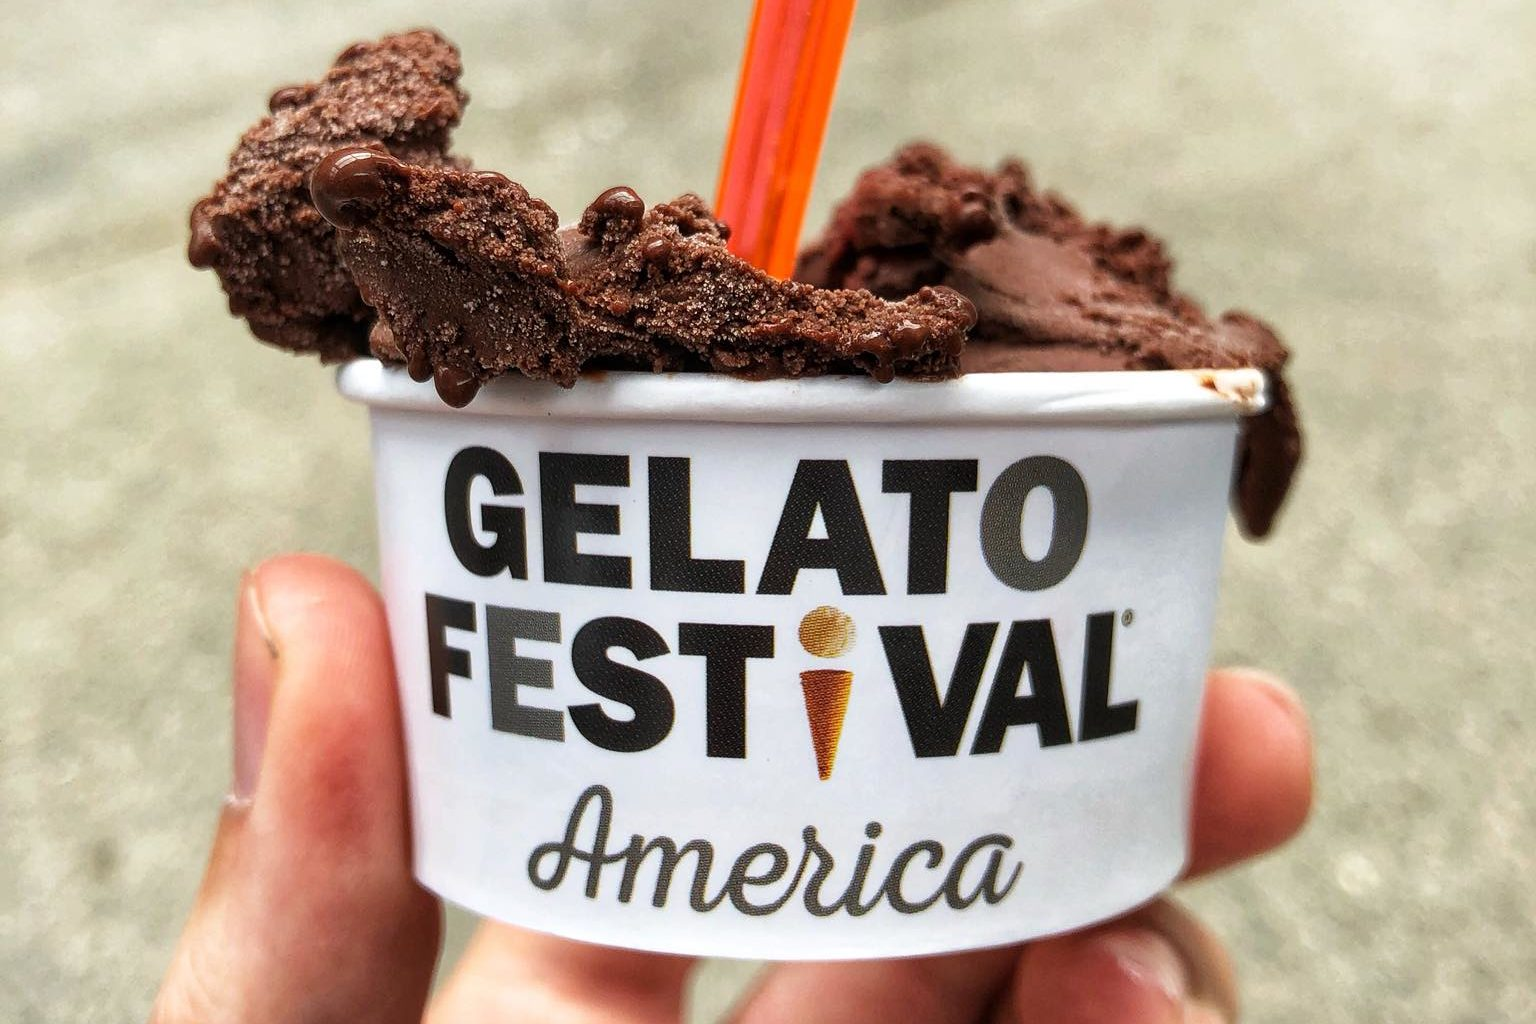 Gelato Festival America Jersey City, New Jersey 2018 Foodist @foodisteats